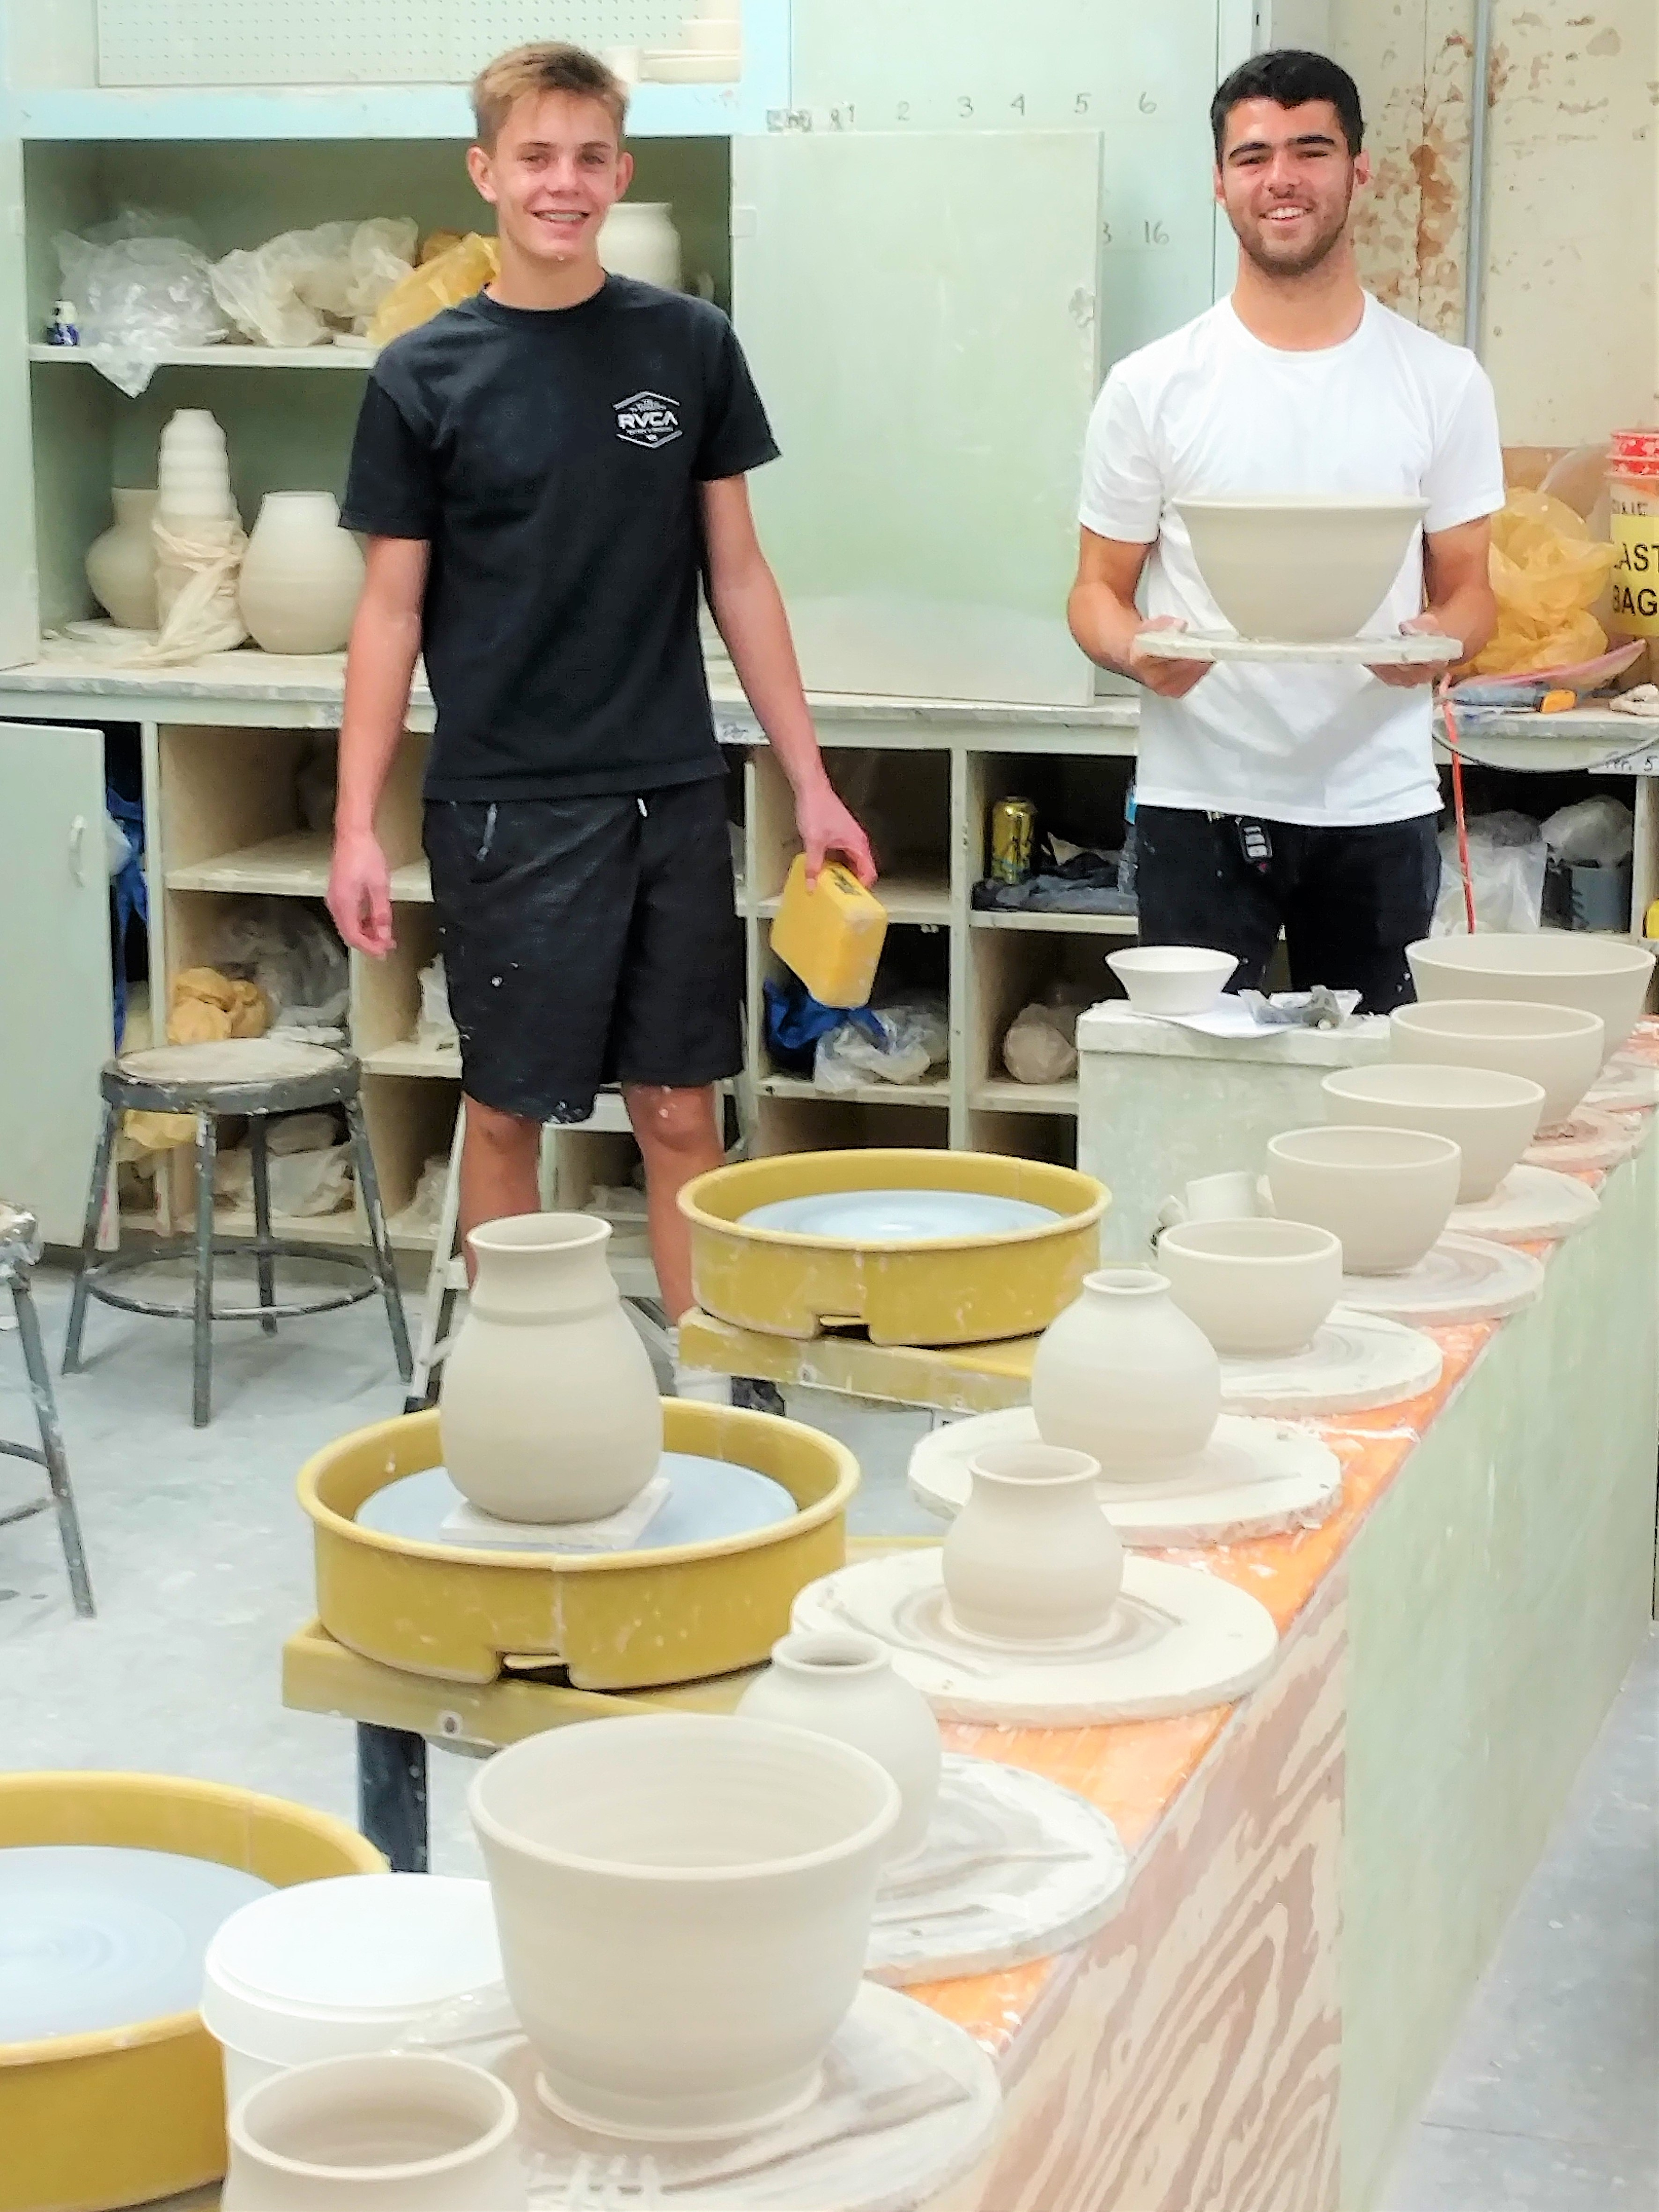 Two students smiling at the camera inside the ceramics classroom along with a row of ceramic plates and cups next to them.